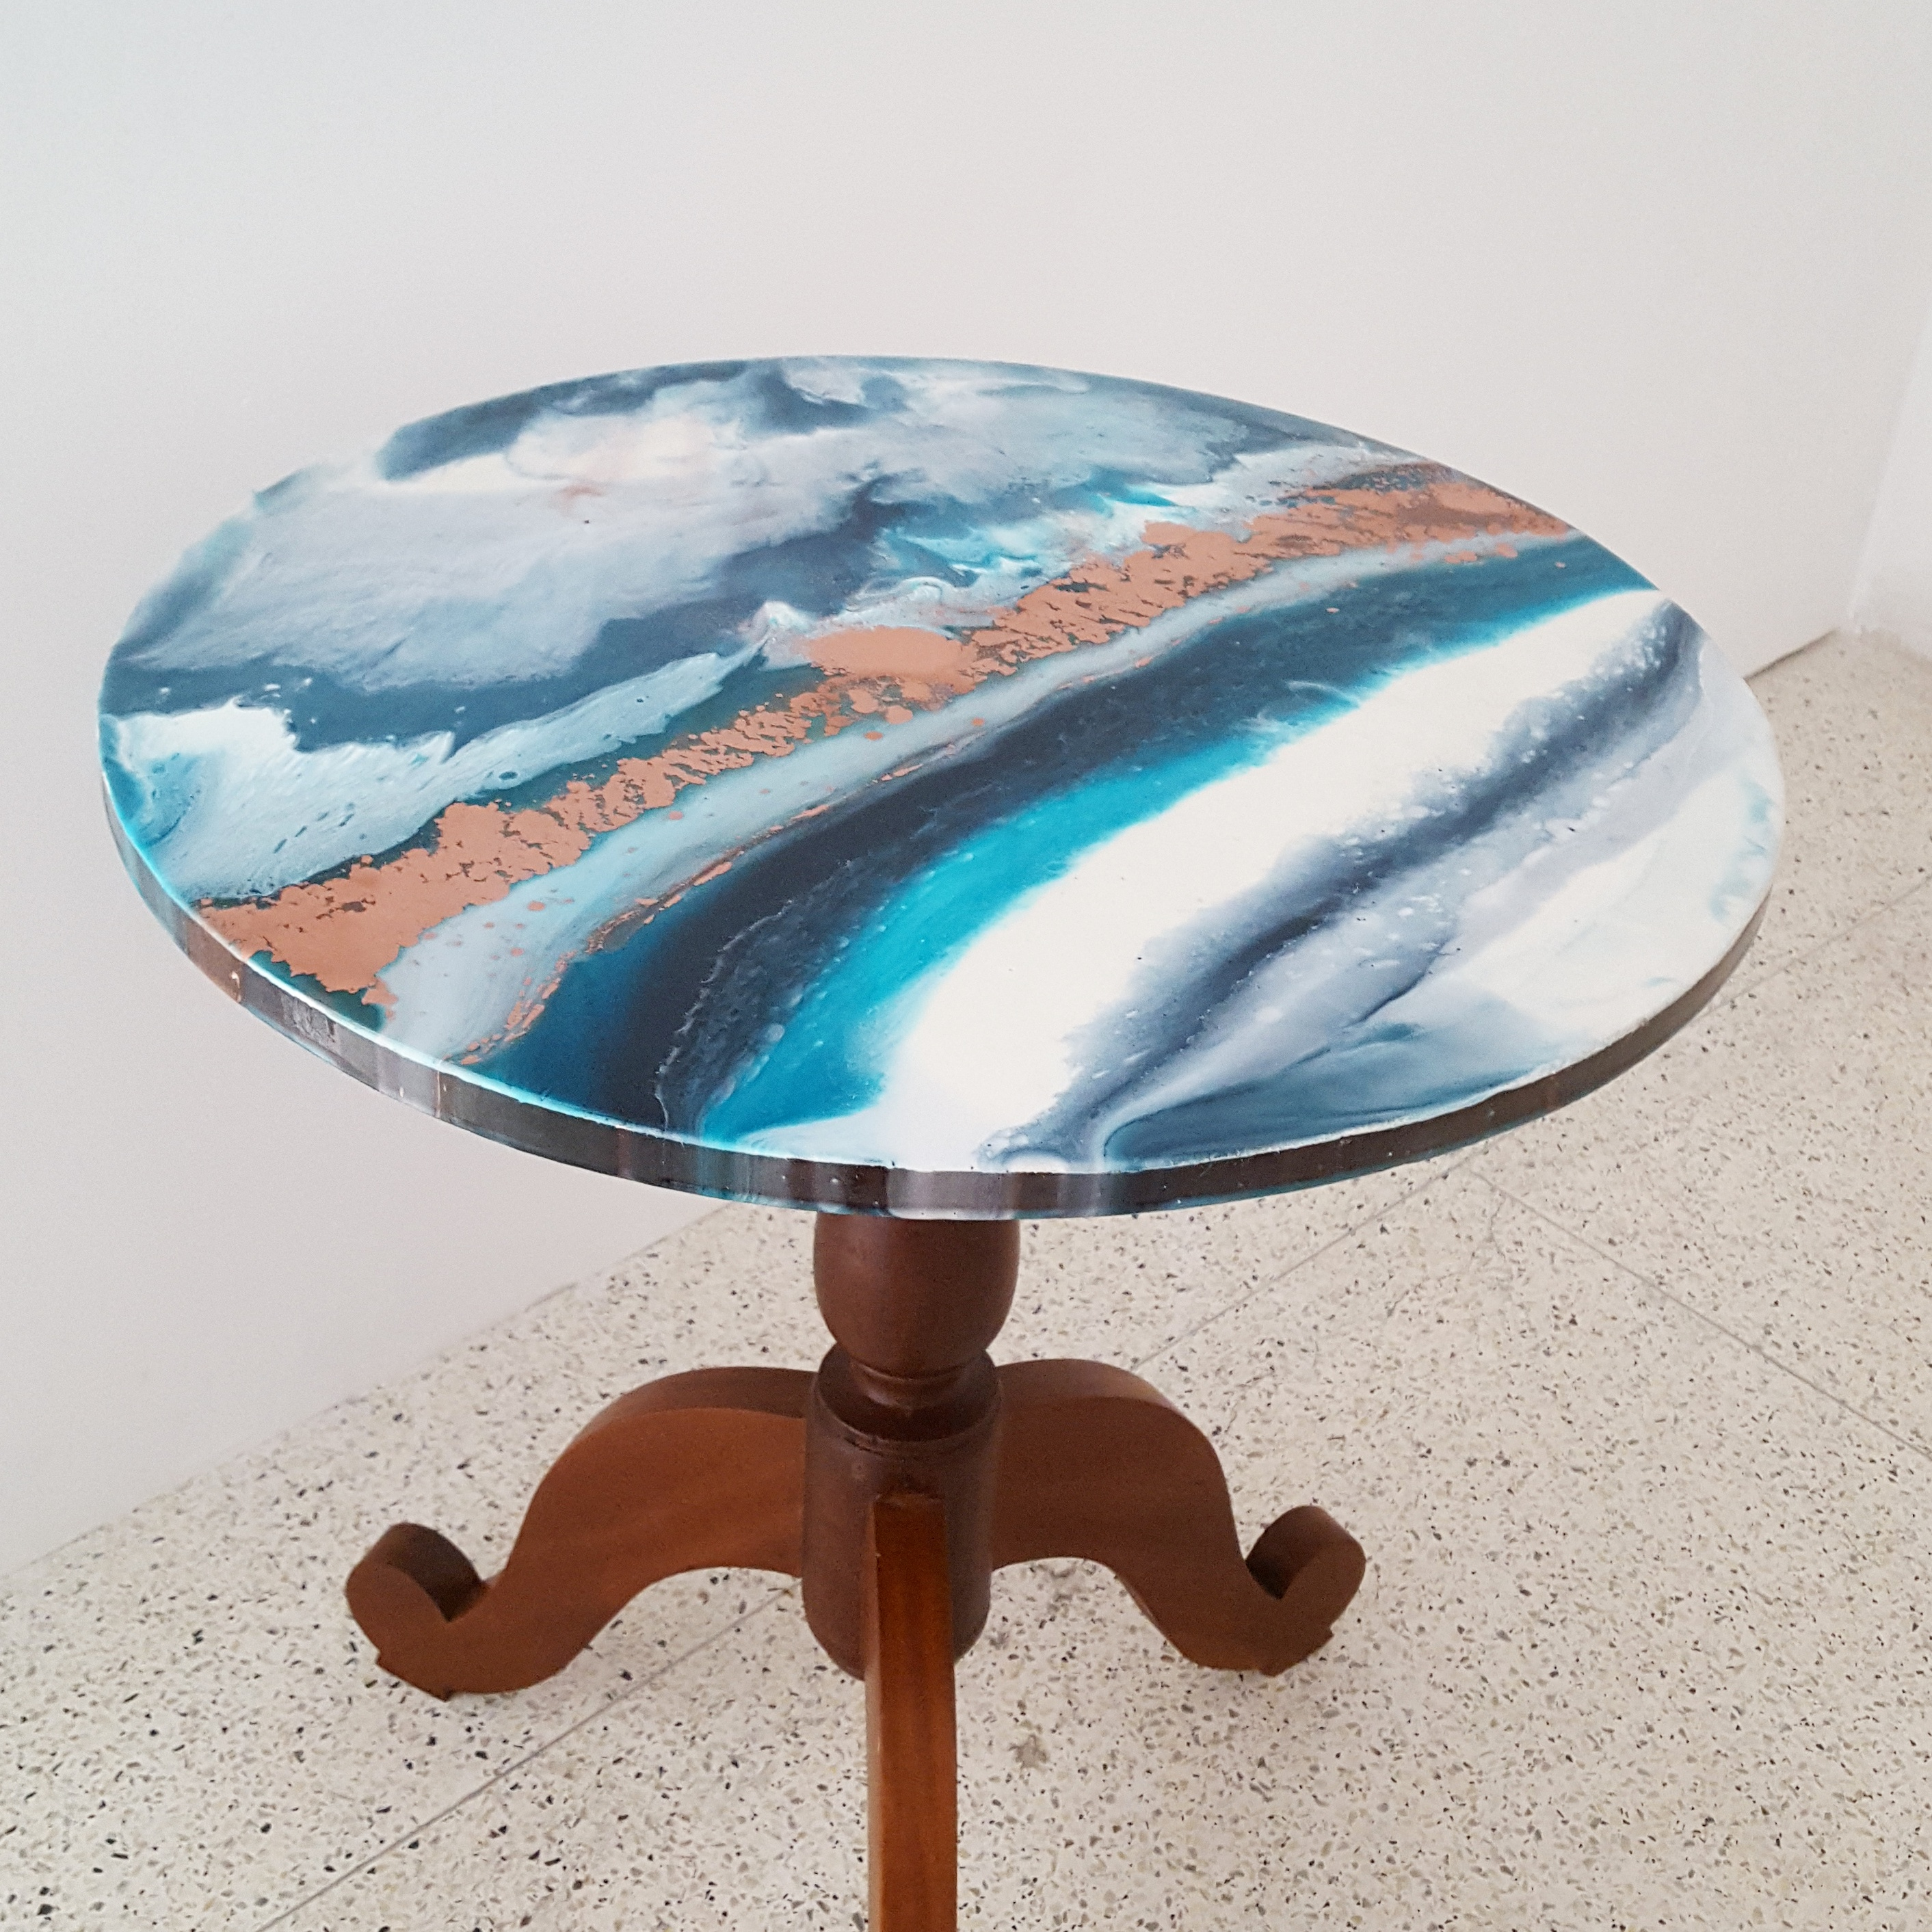 Teak table with Resin table top